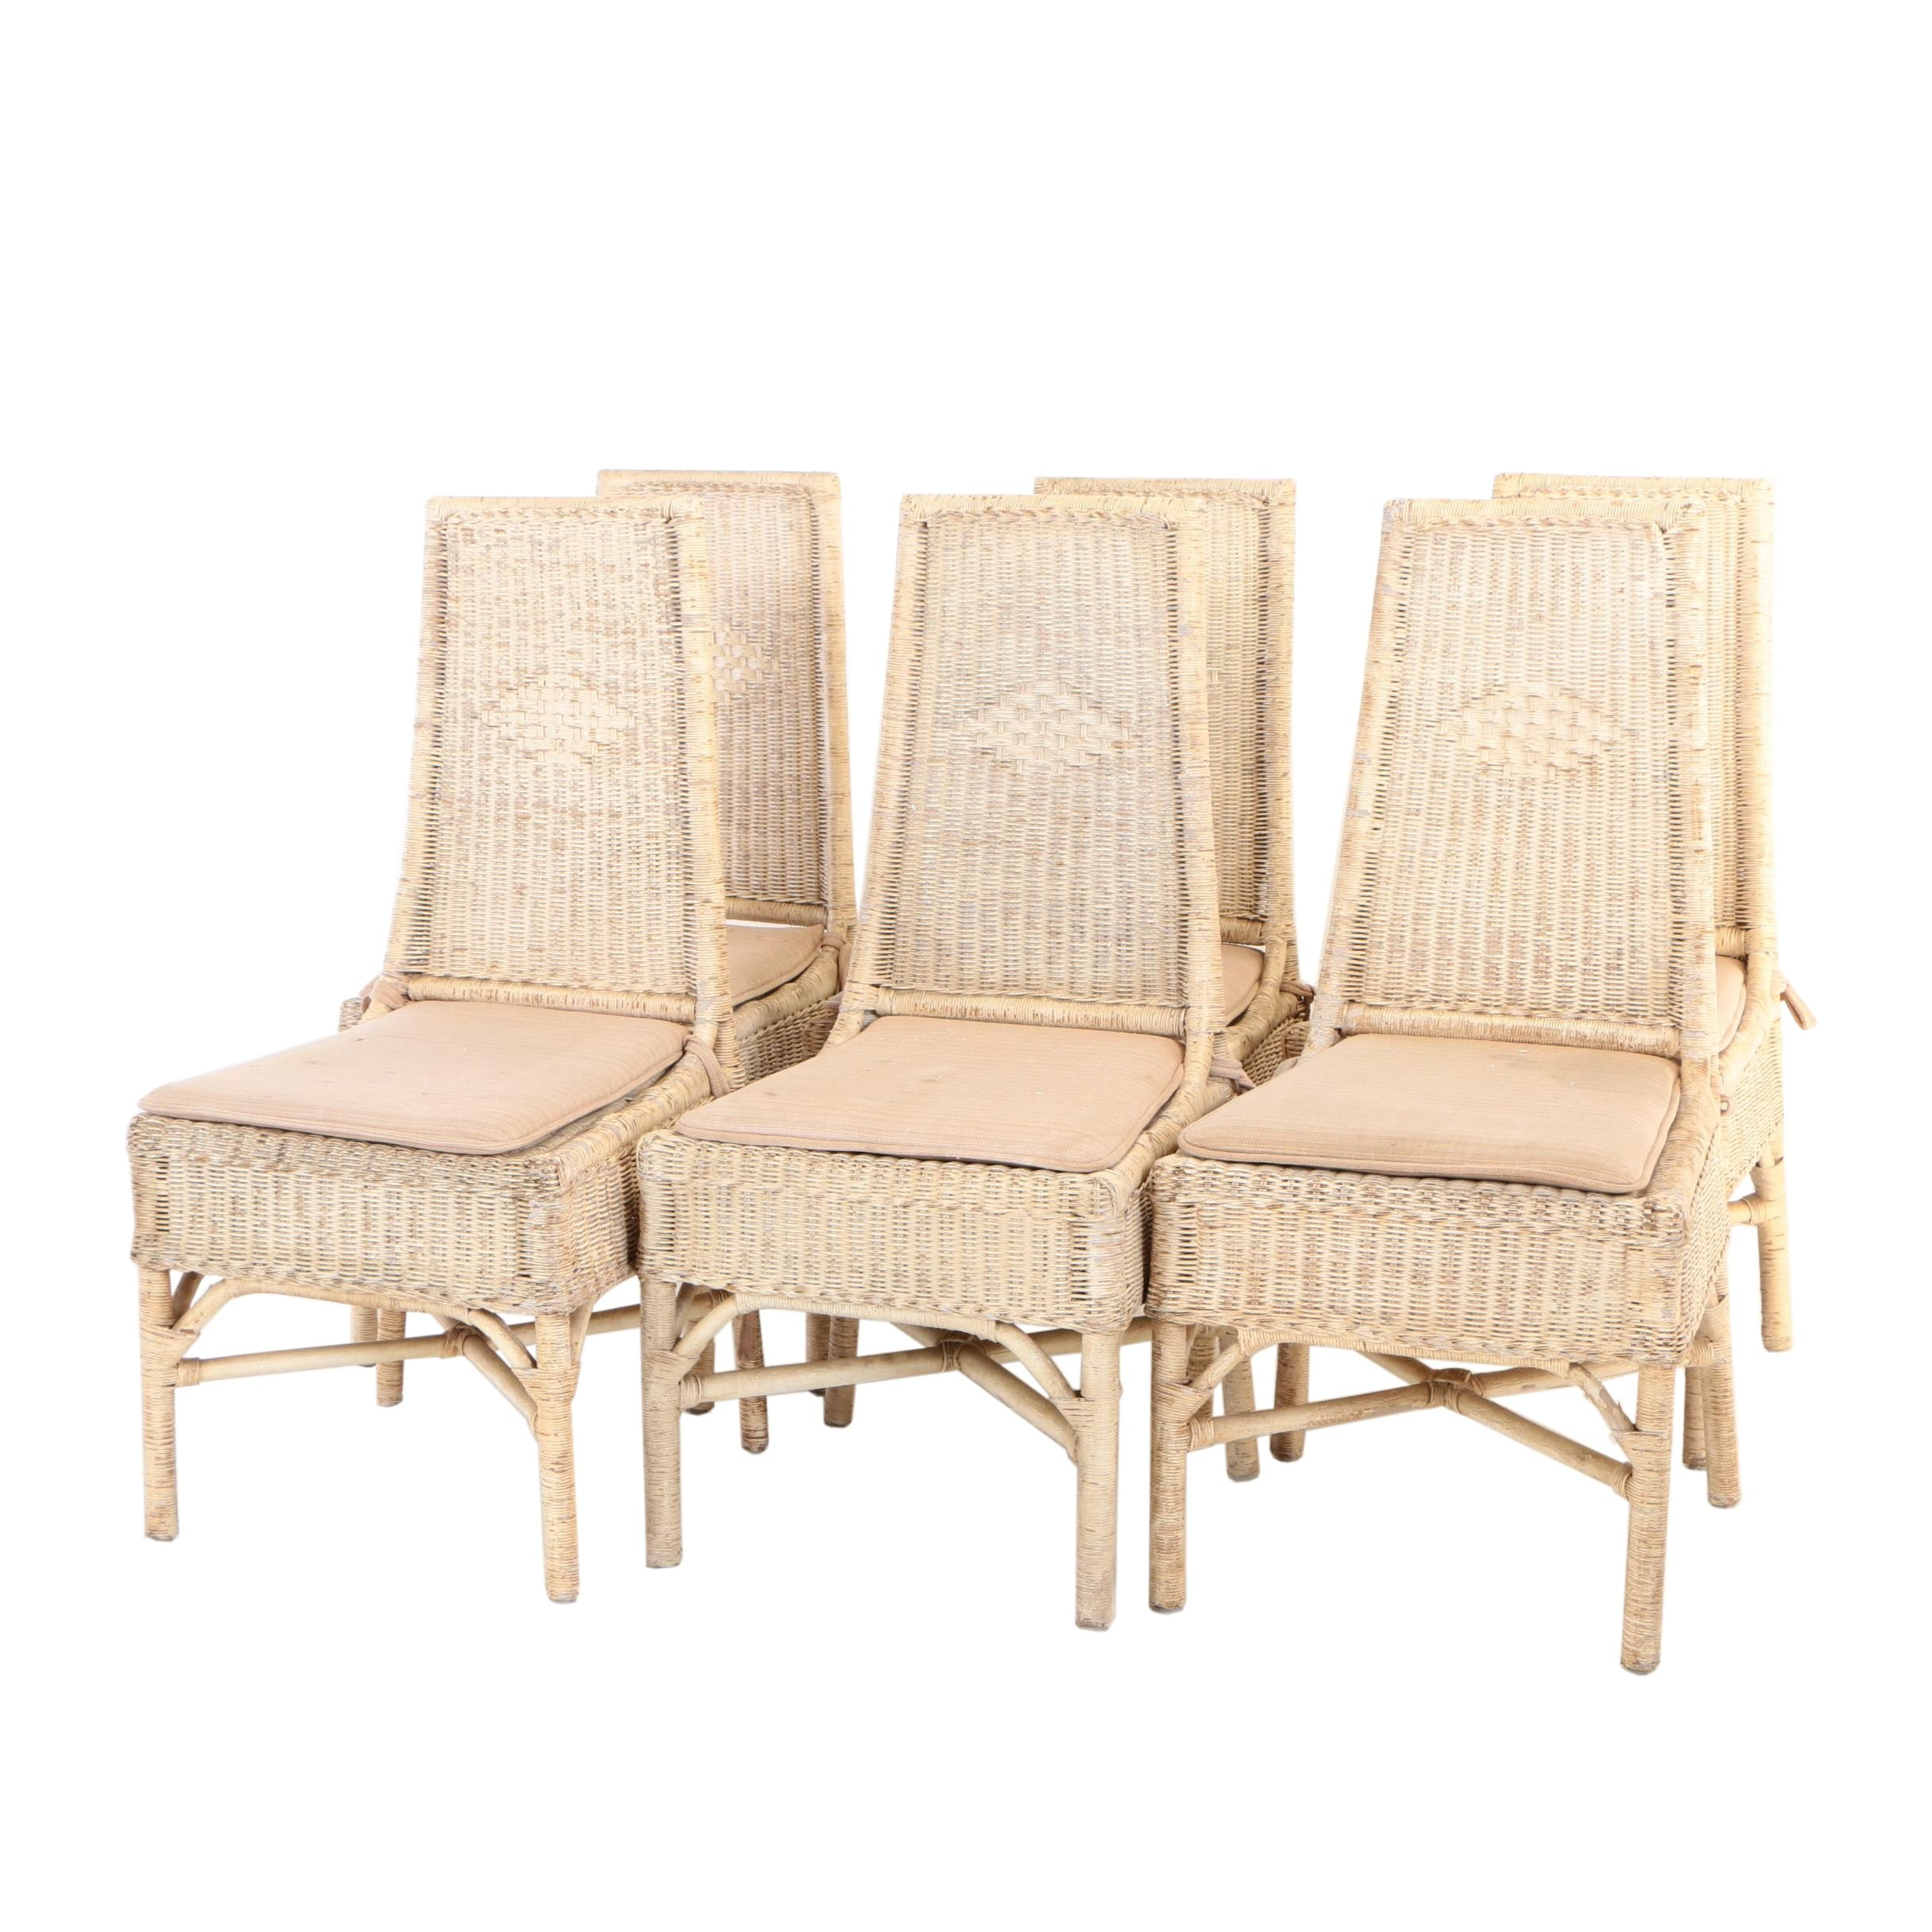 Six Painted Wicker Patio Dining Side Chairs, Late 20th Century